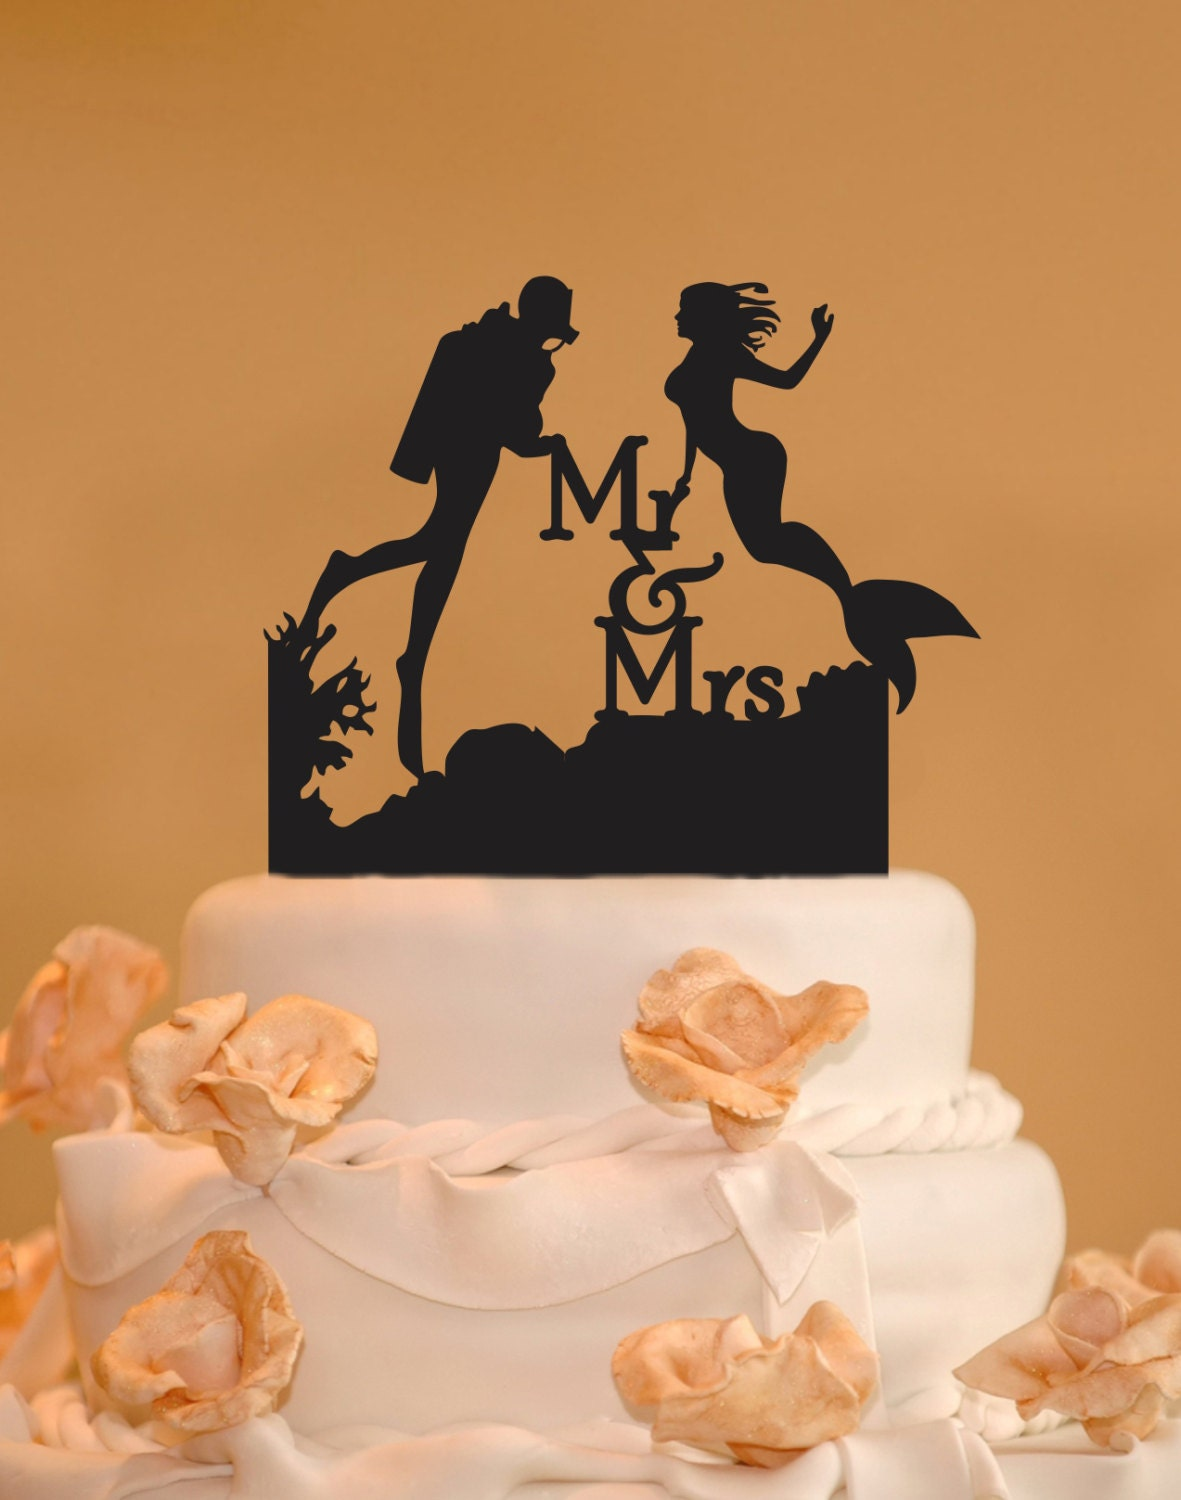 Description This Scuba Diver And Mermaid With Mr Mrs Wedding Cake Topper